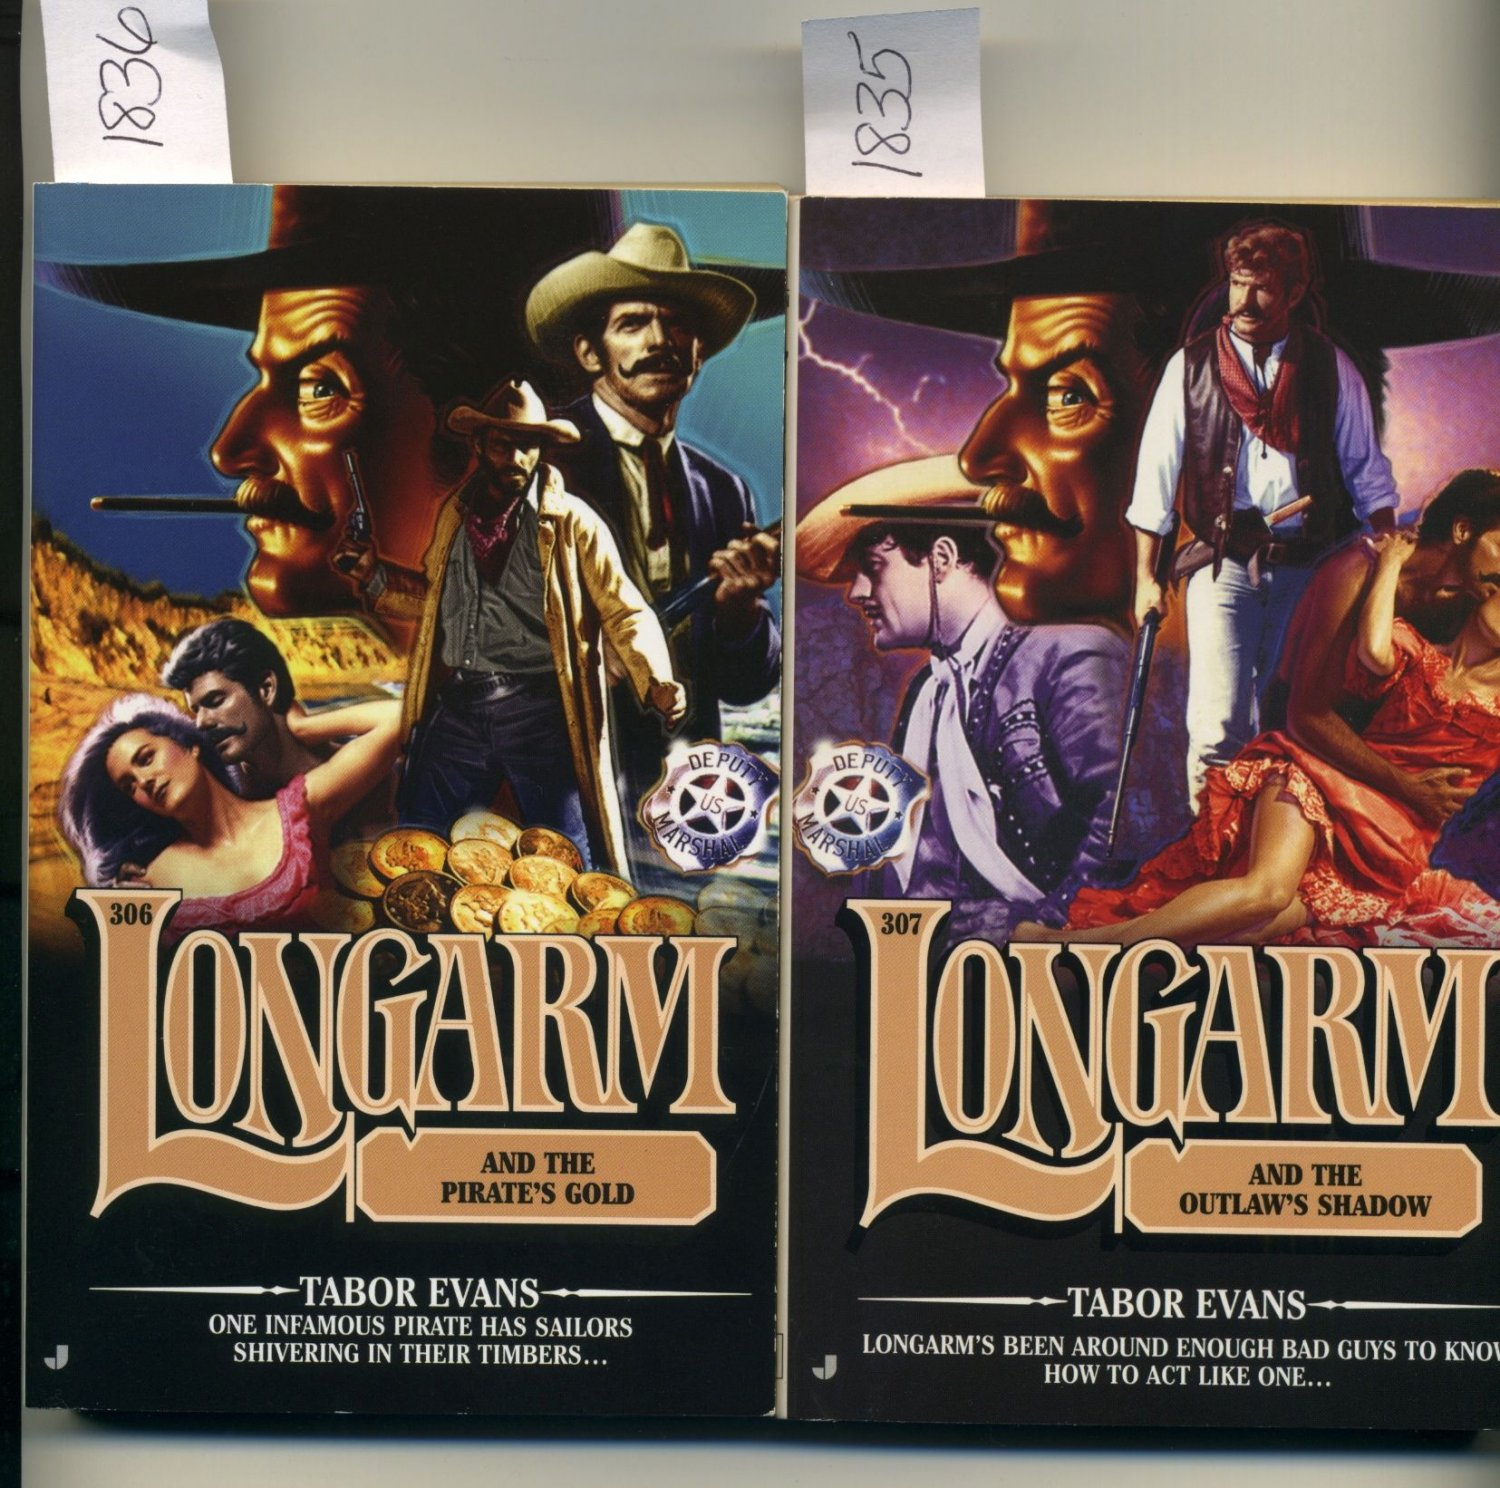 Lot of 2 Longarm #306 Pirate's Gold and #307 Outlaw's Shadow Tabor Evans Western Paperbacks